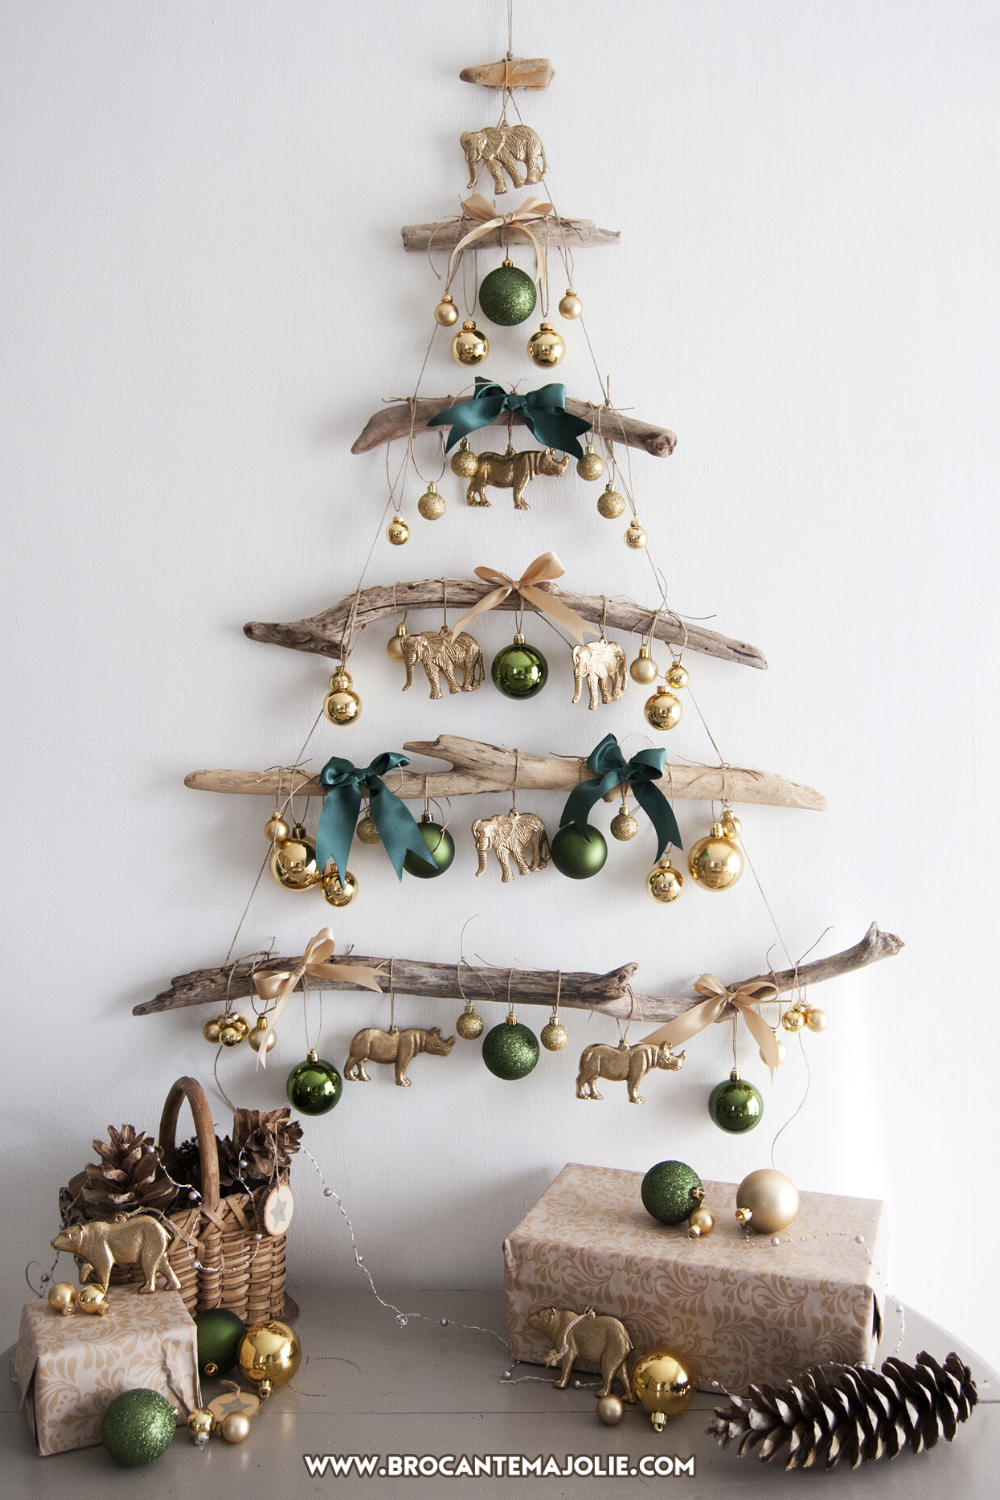 Driftwood Christmas Tree In 2020 Driftwood Christmas Tree Christmas Decorations Rustic Flat Christmas Tree